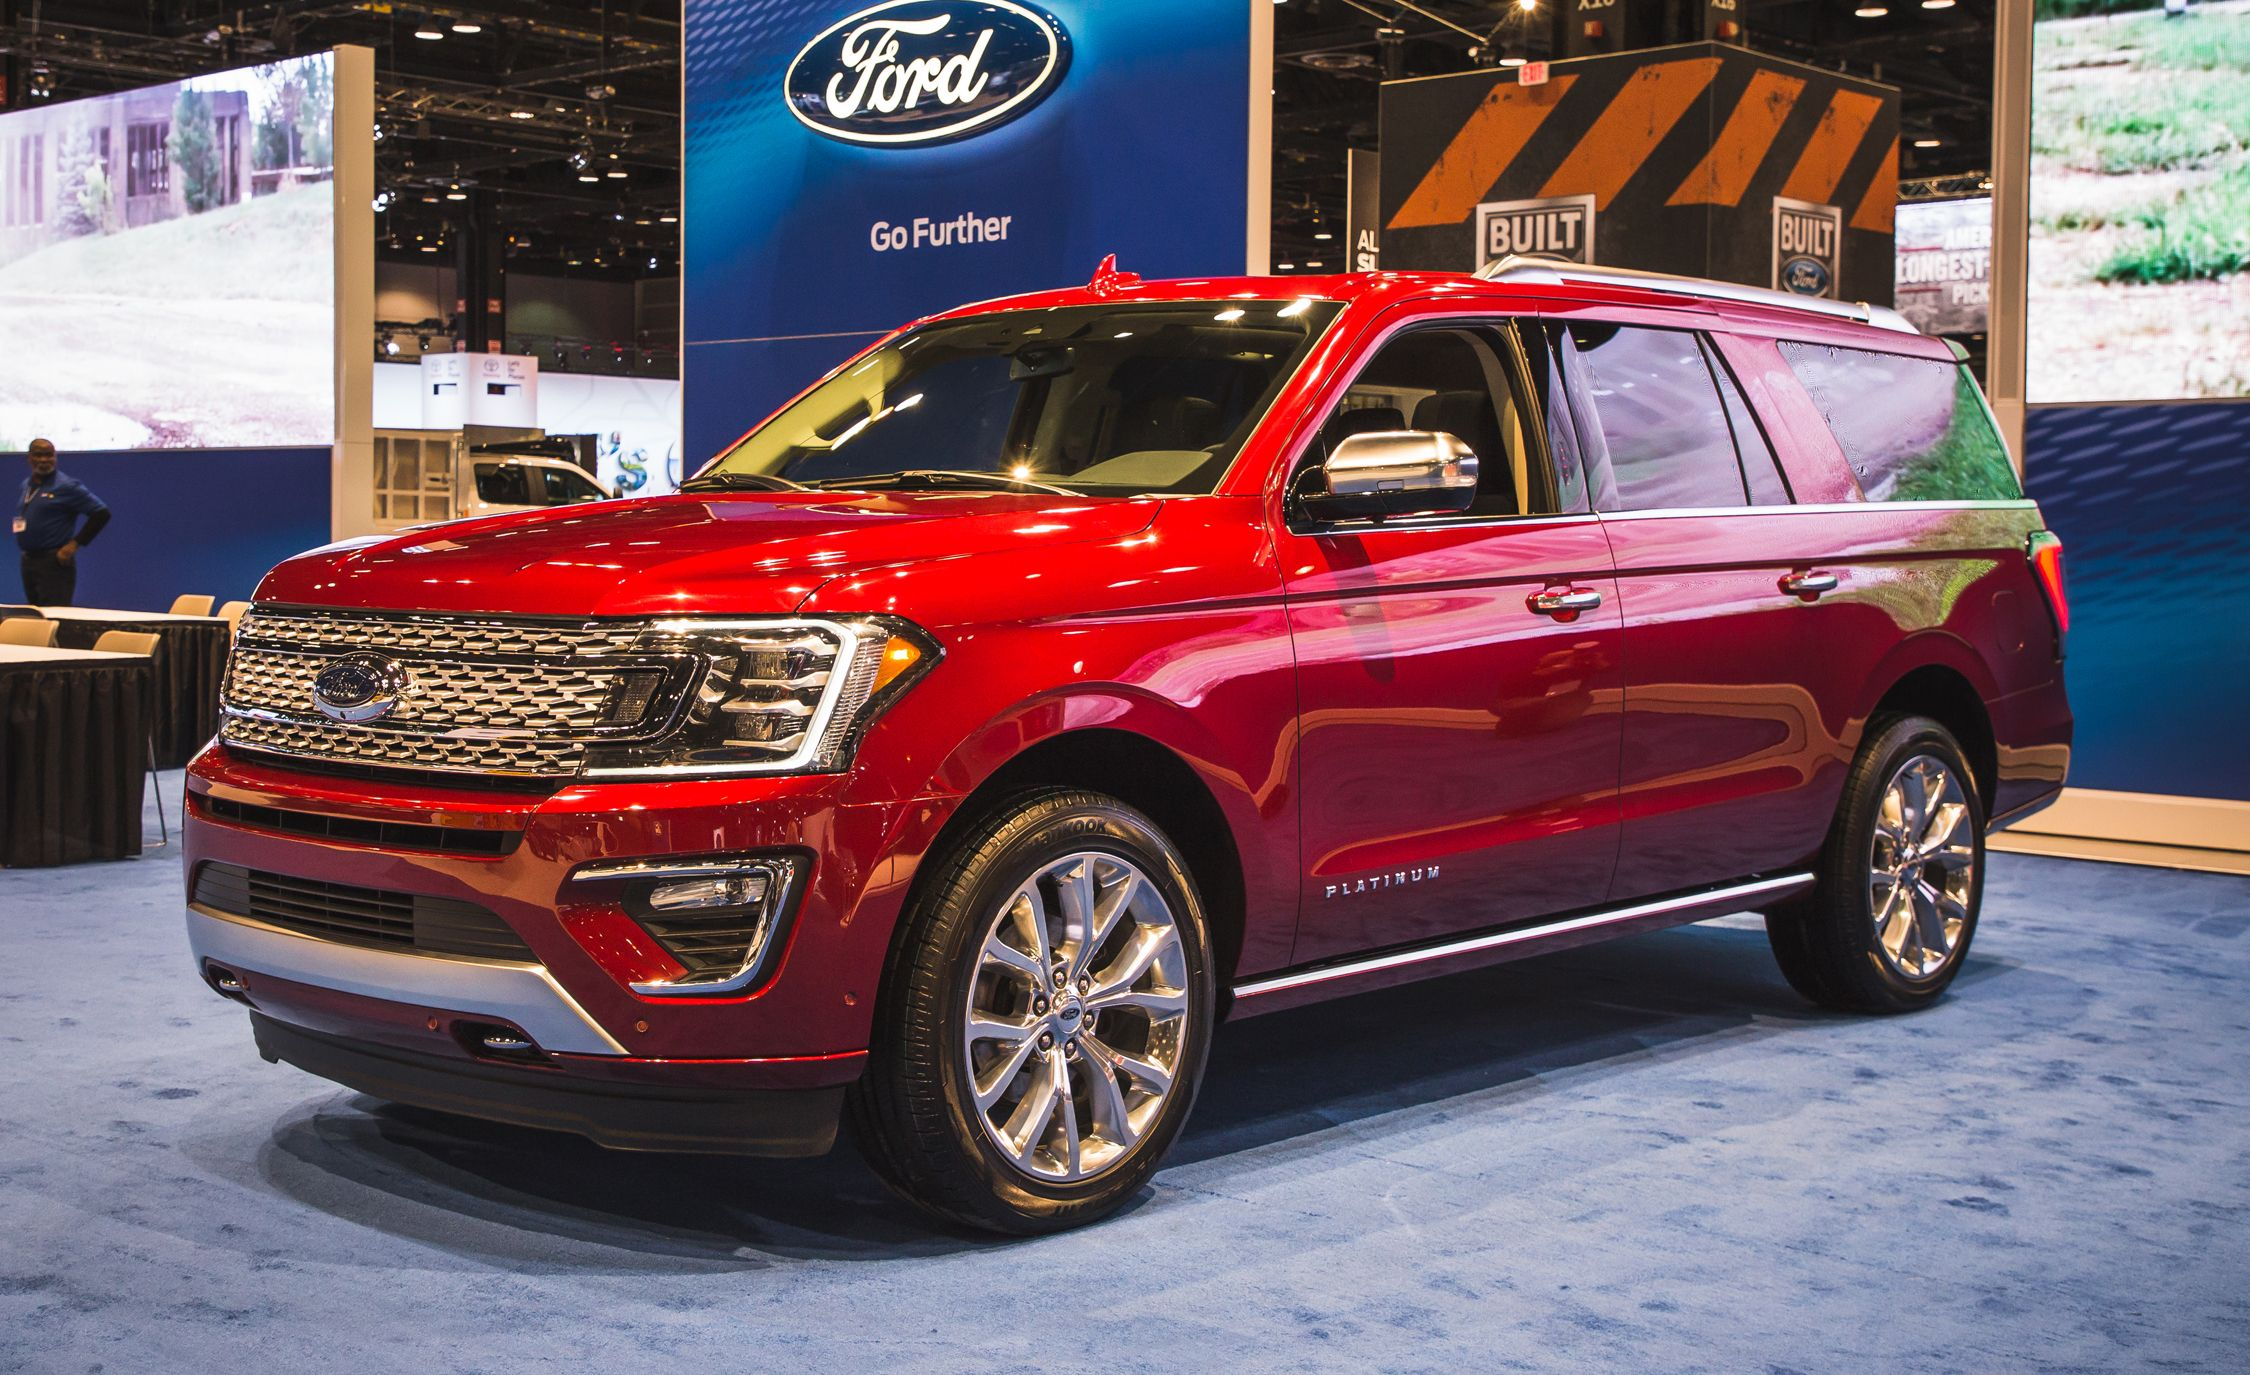 Ford Expedition U553 2018 | Sub | Pinterest | Ford ...